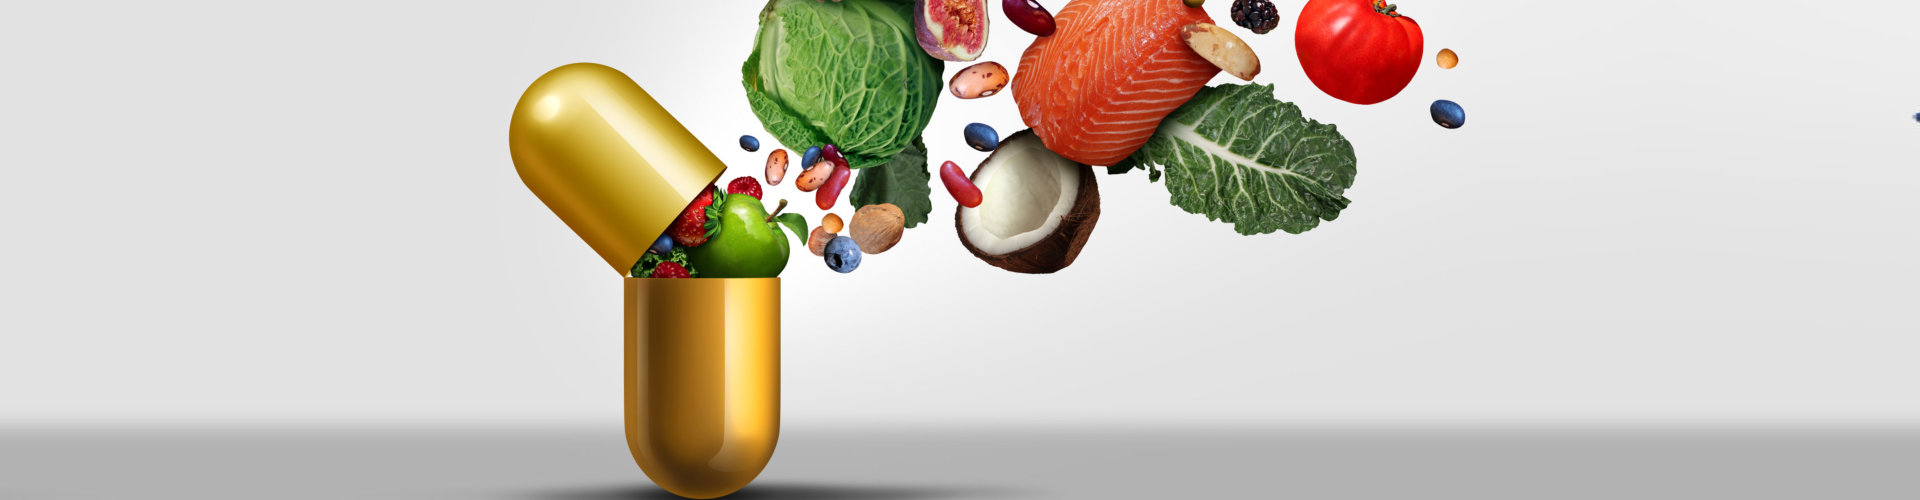 Vitamins supplements as a capsule with fruit vegetables